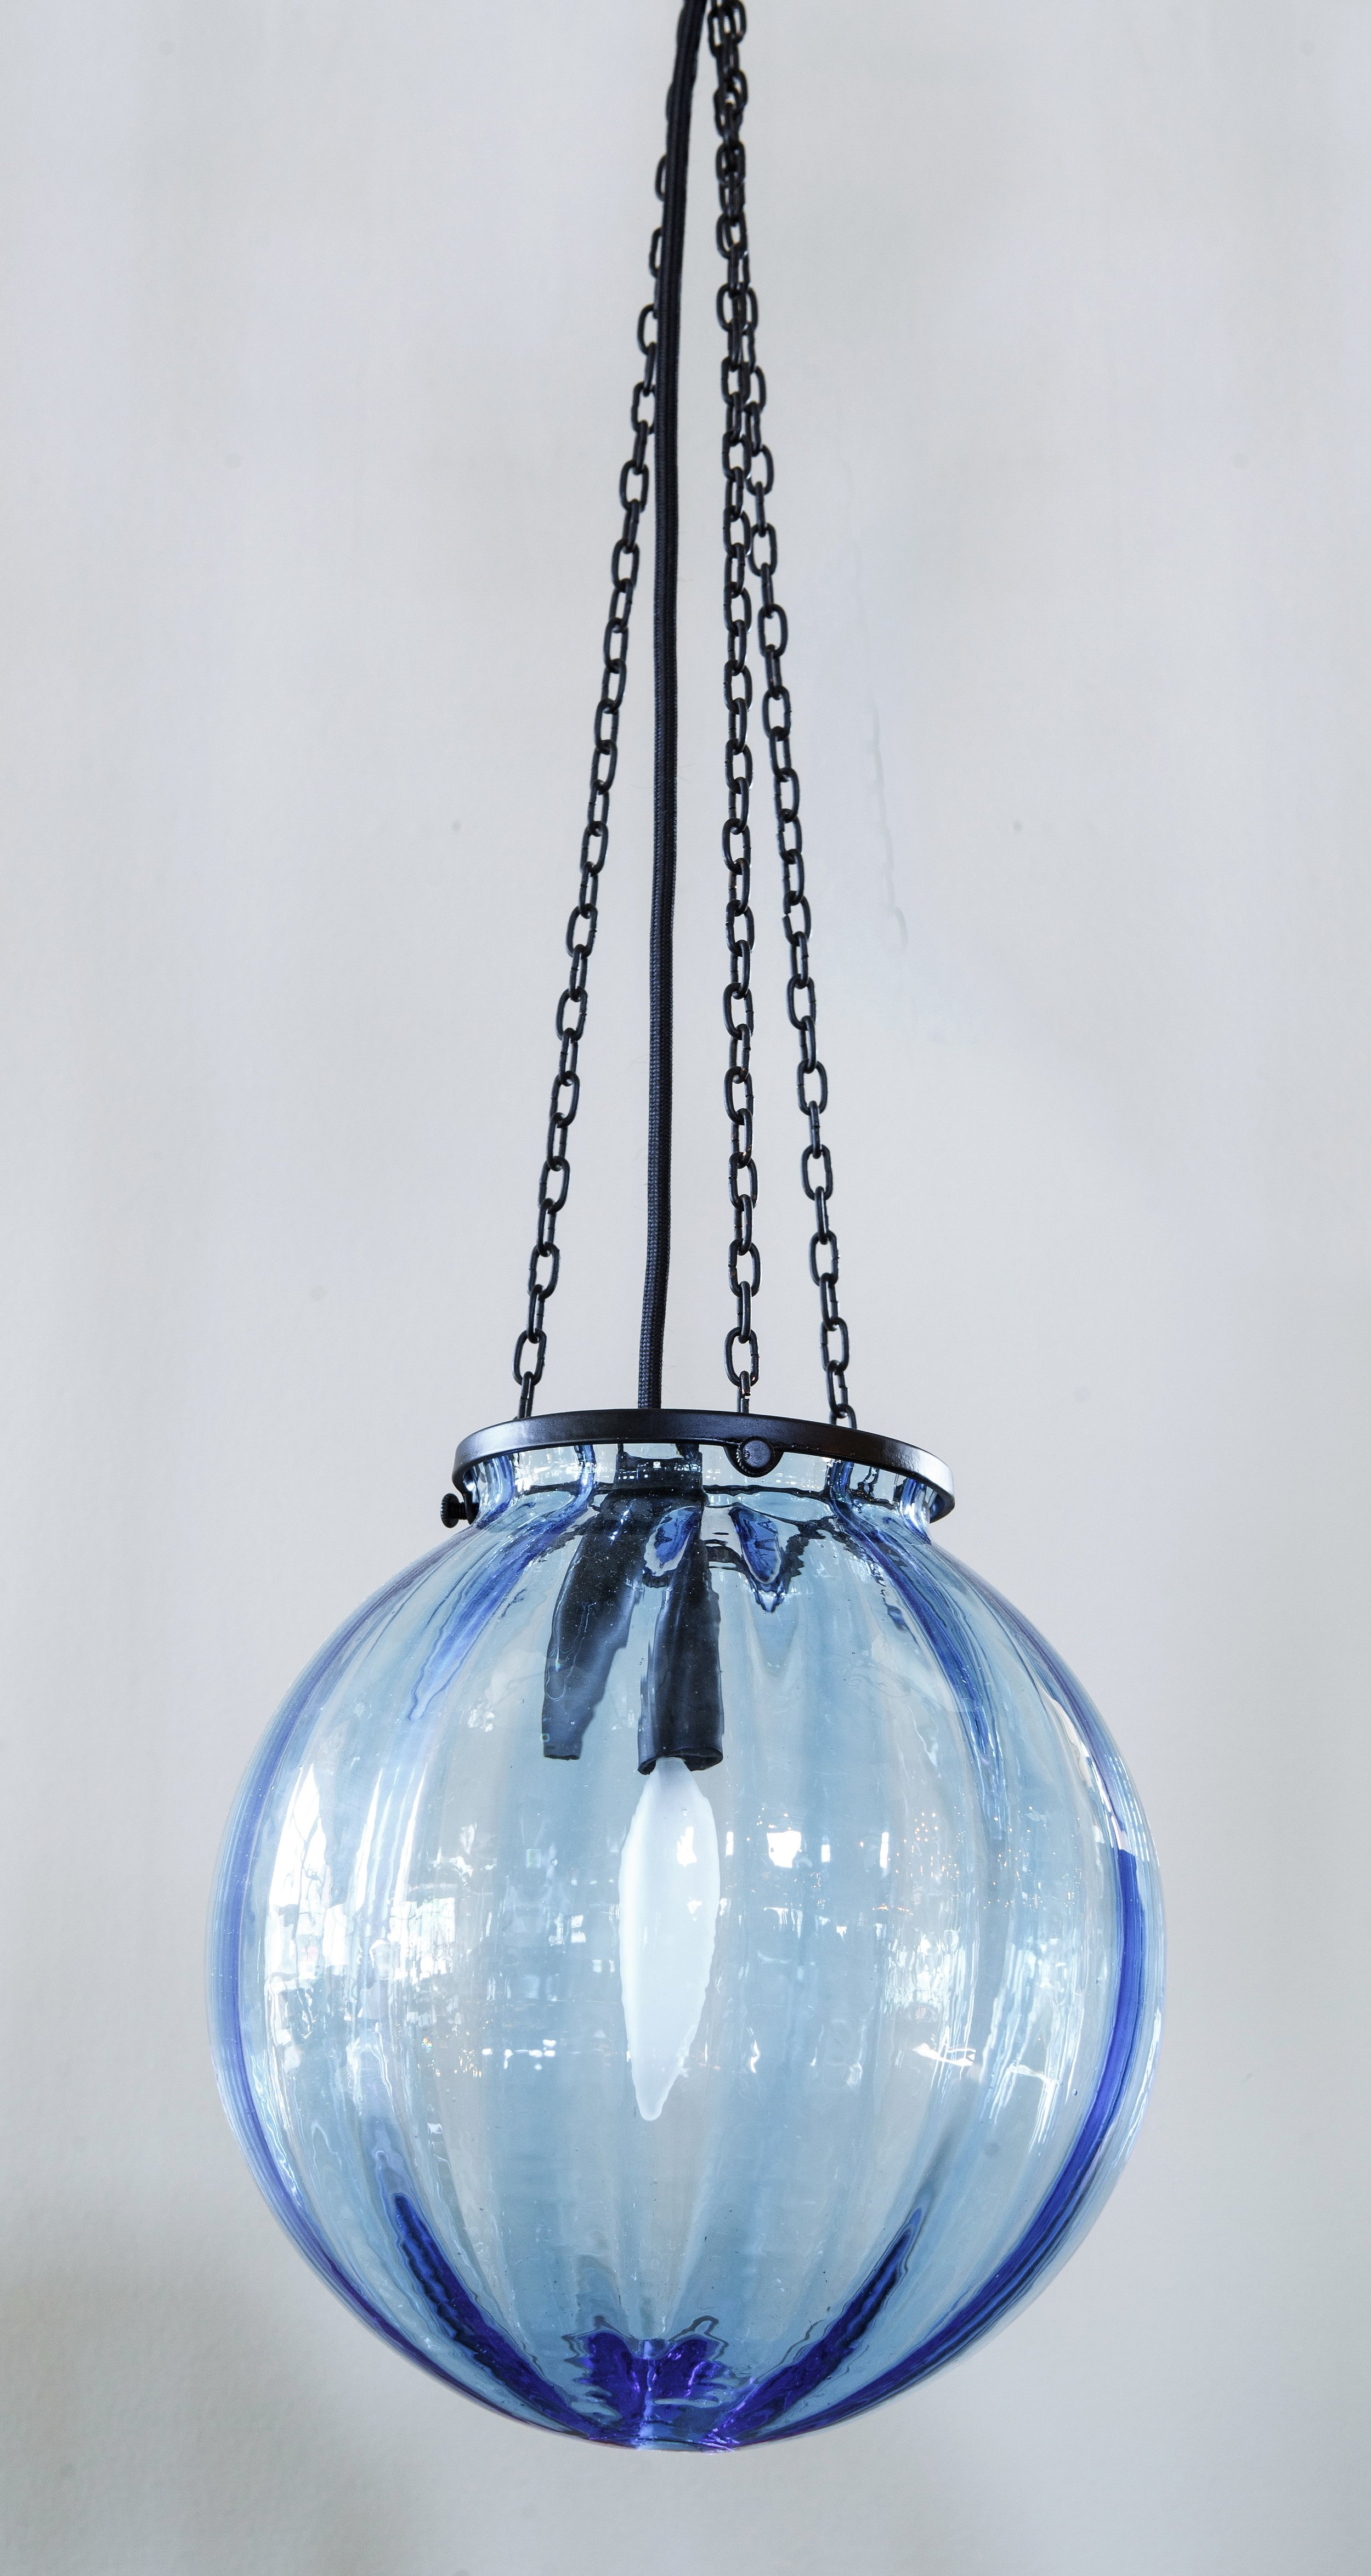 Vintage Hand-Blown Murano Glass Blue Sphere Light